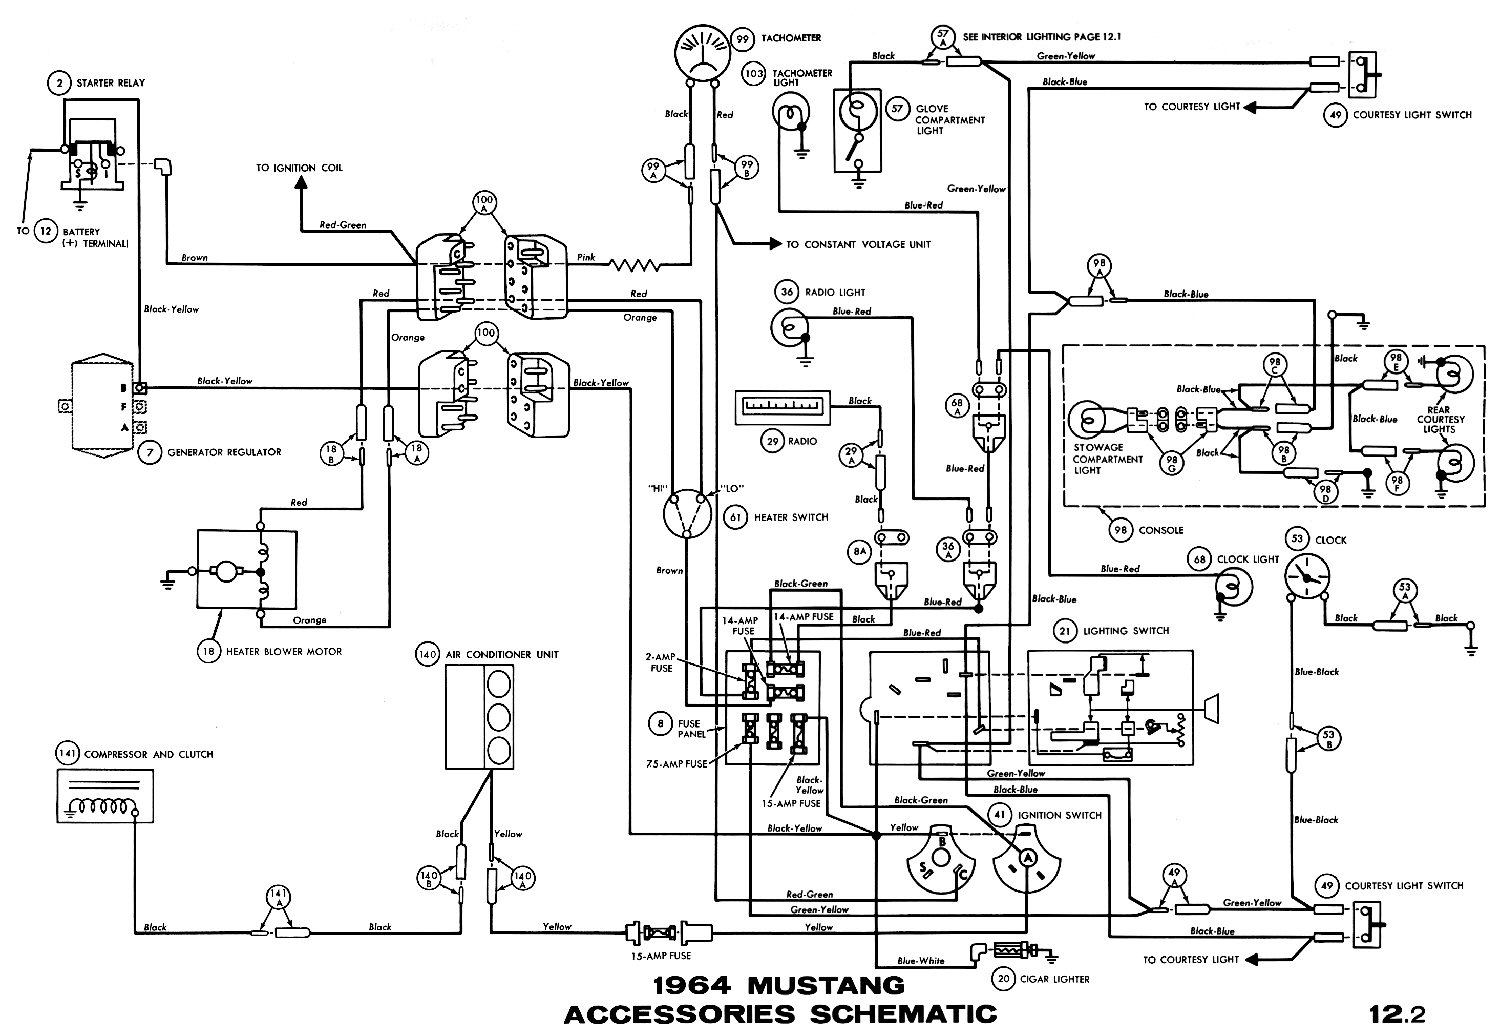 1964 Mustang Accessories Pictorial or Schematic. Air conditioner ...